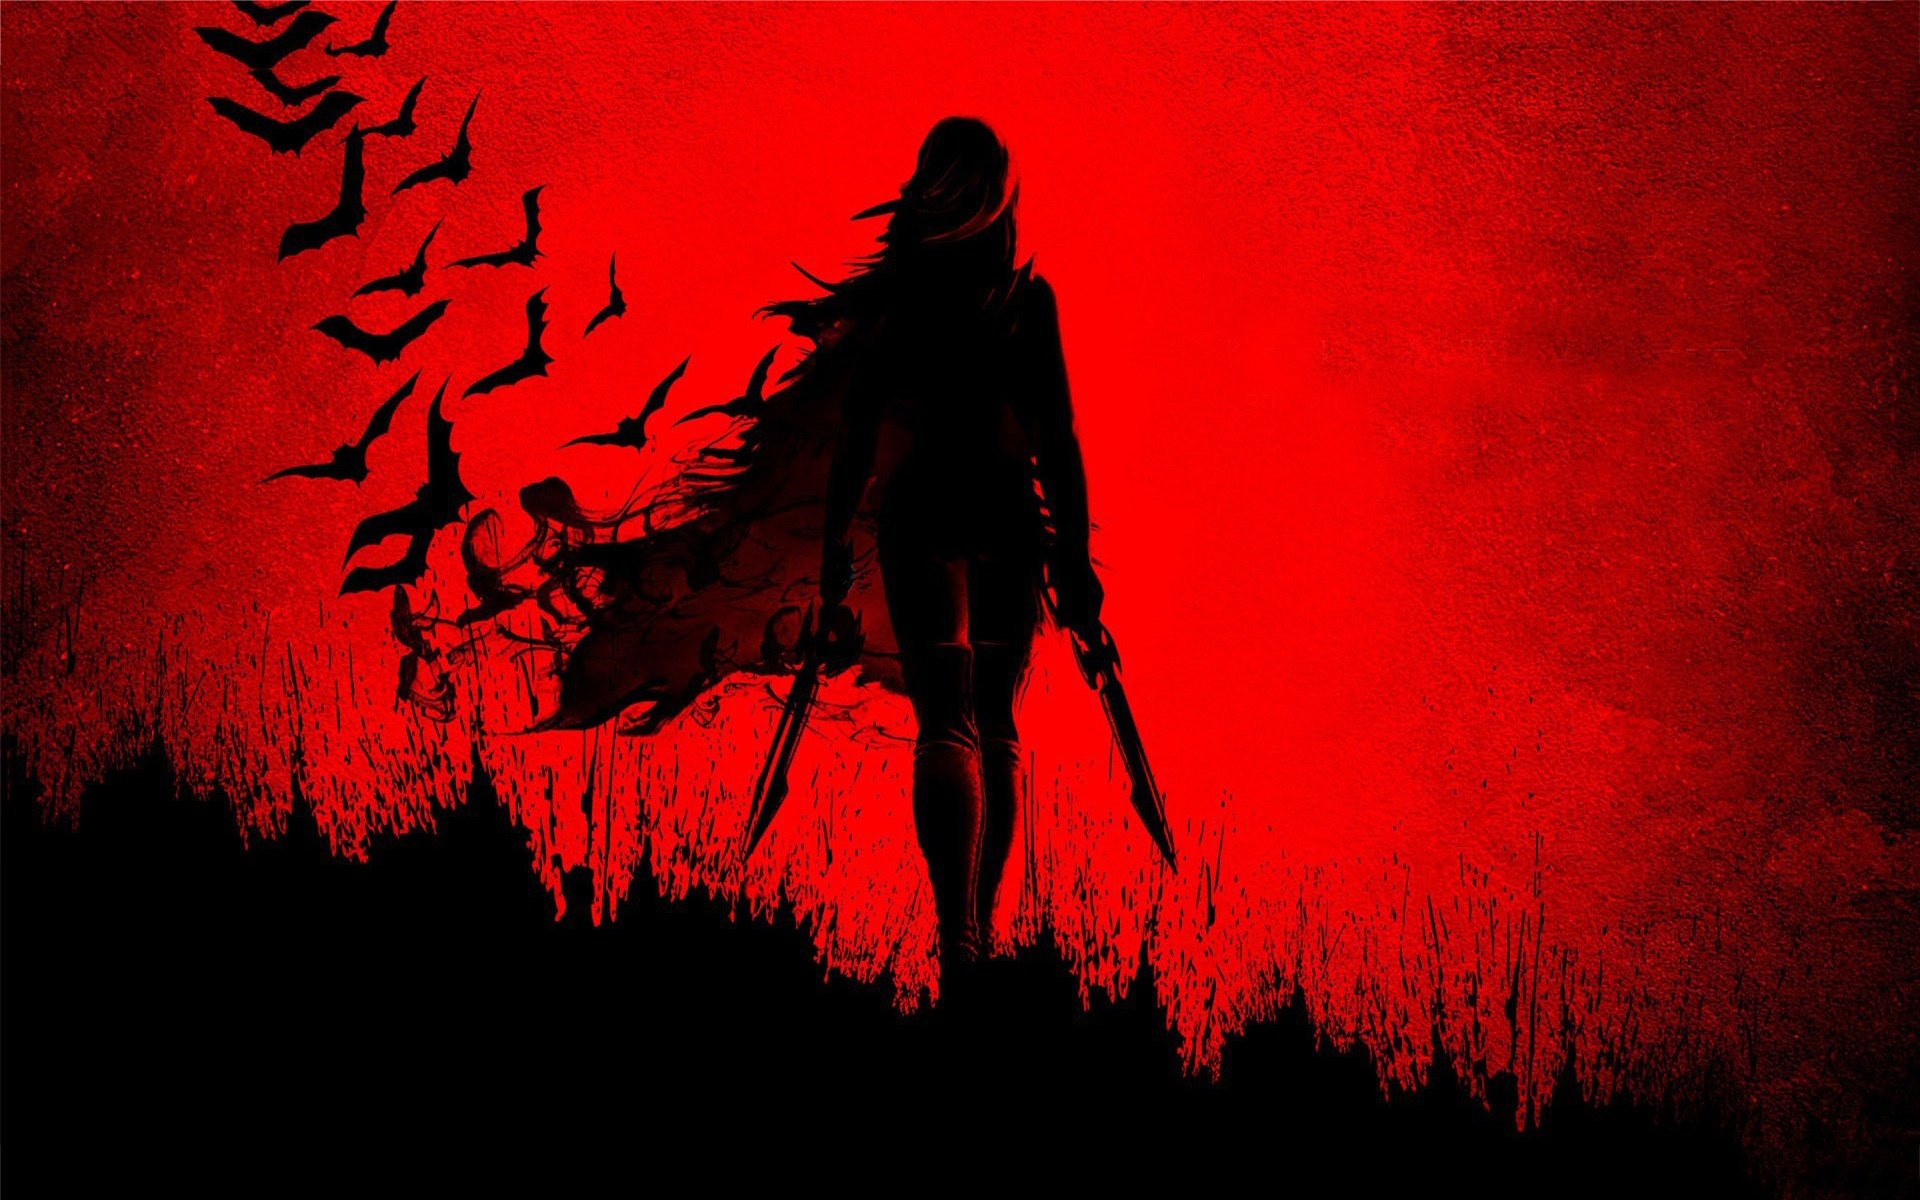 Blade Girl Shadow Wide Red Sword Anime Wallpaper X  Wallpaperup